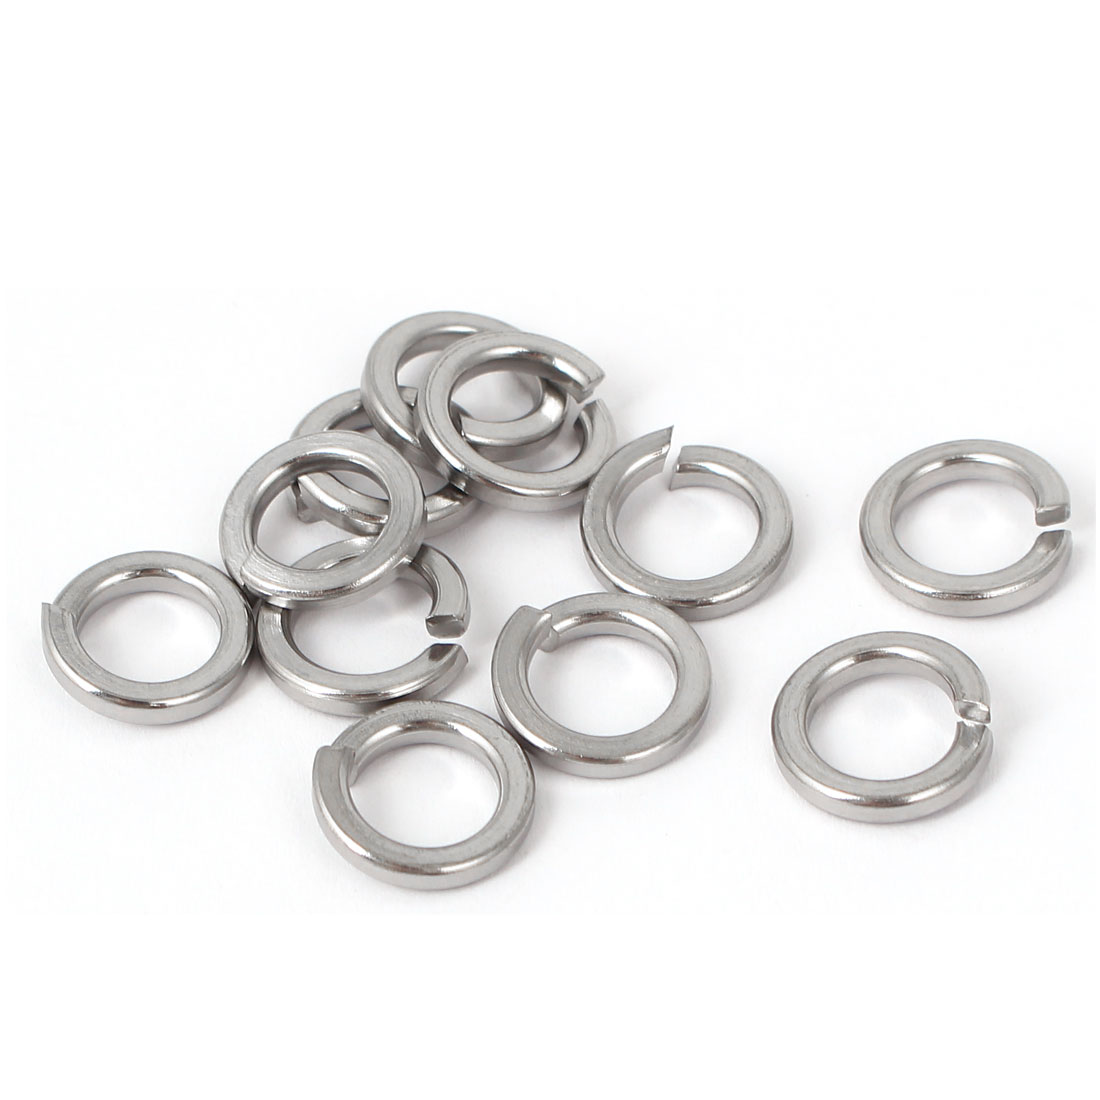 8mm Inner Dia 304 Stainless Steel Square Section Spring Washers DIN 7980 11PCS